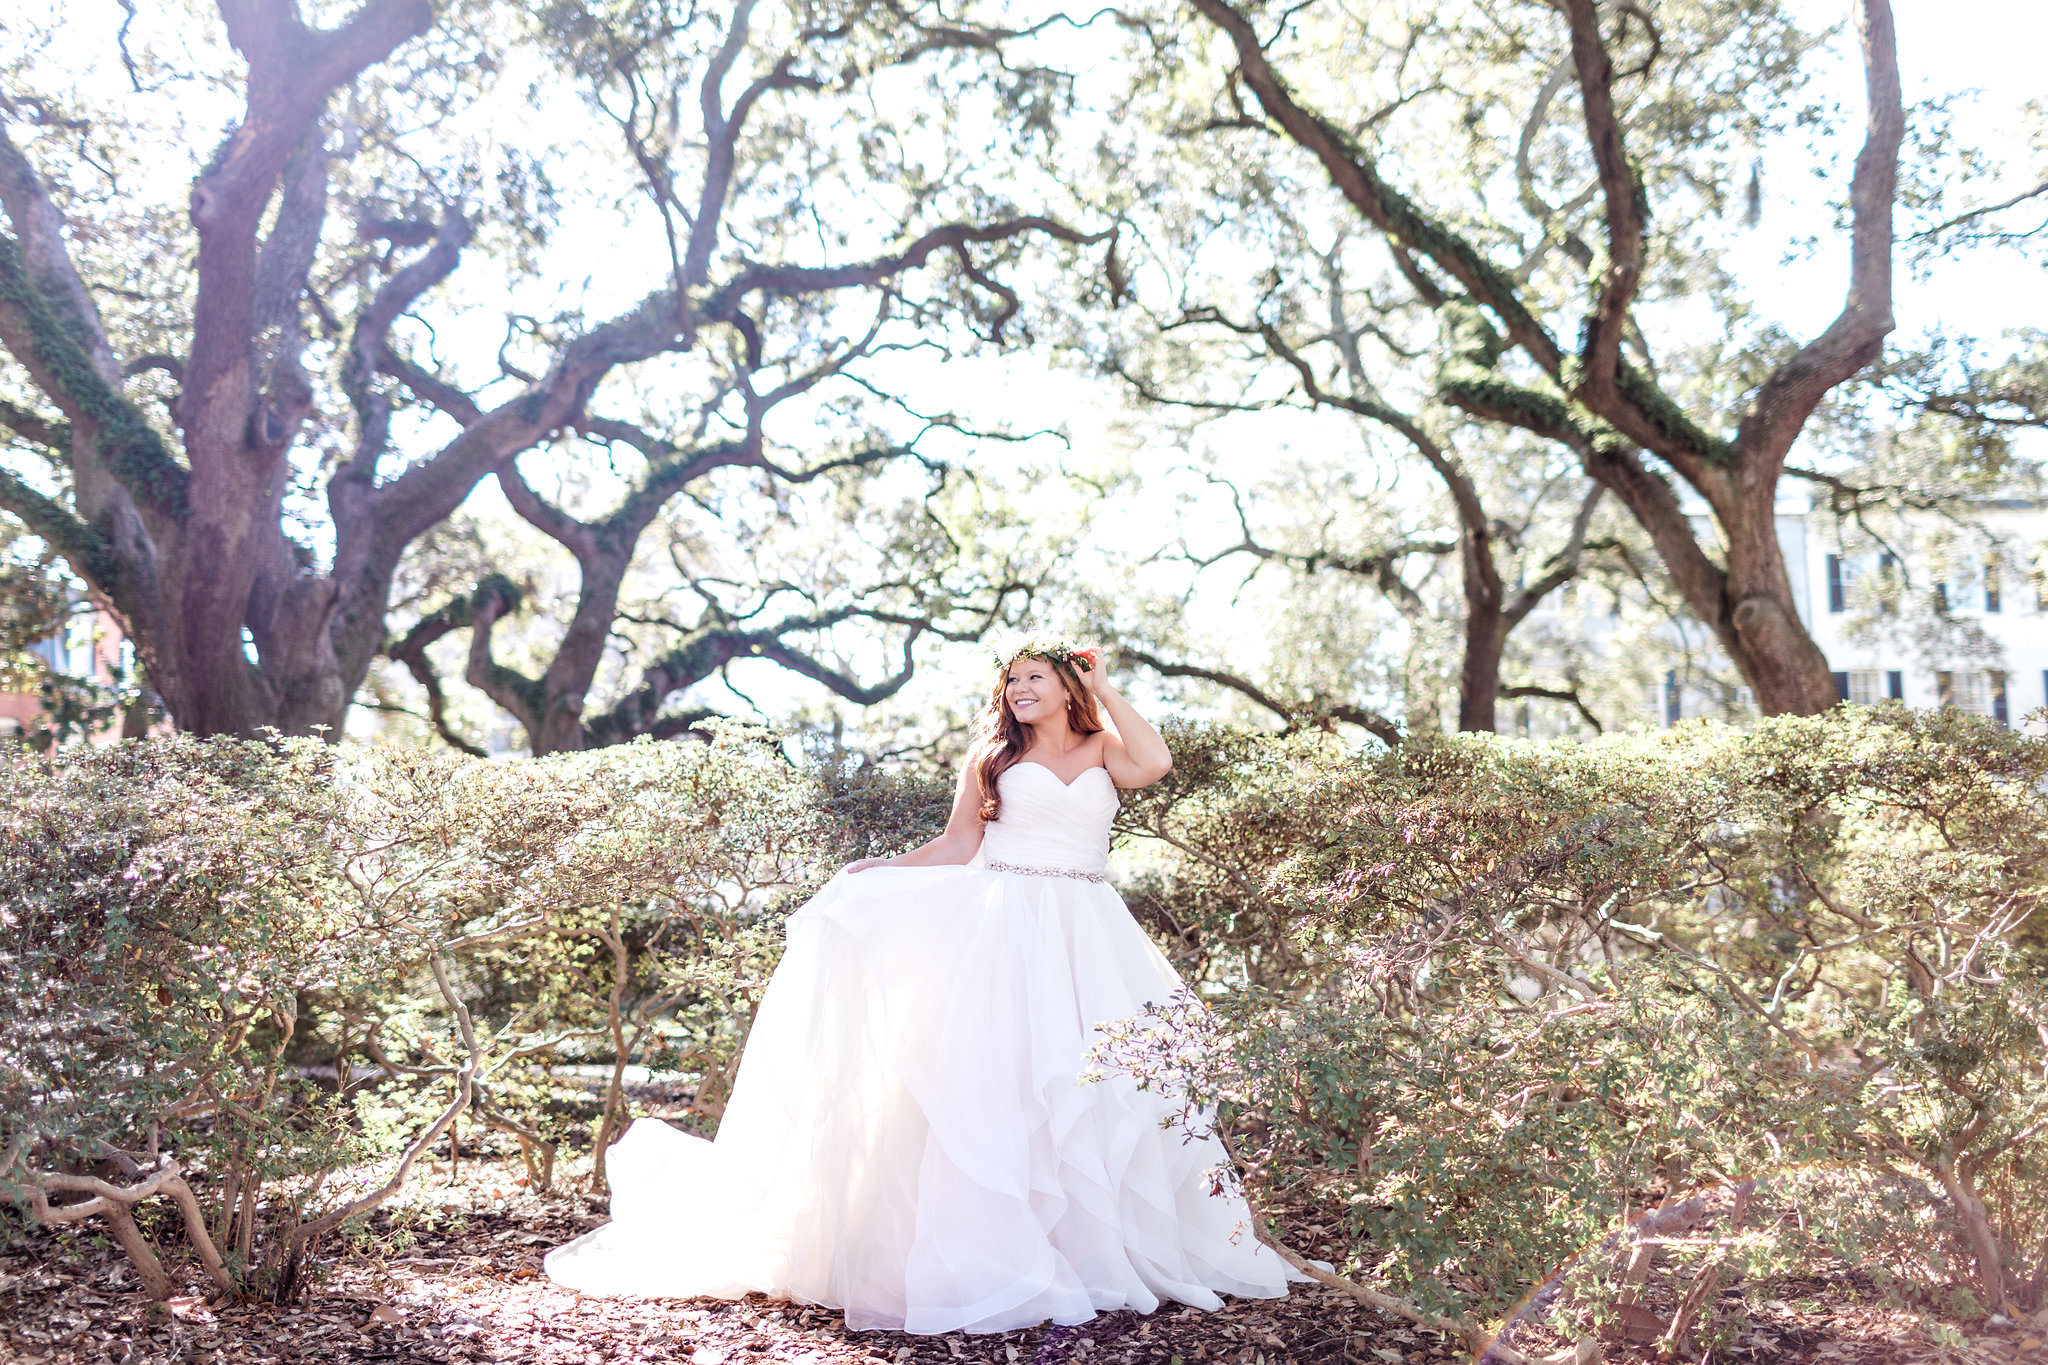 apt-b-photography-mary-elizabeths-bridal-boutique-adele-amelia-accessories-morilee-5504-savannah-bridal-boutique-savannah-weddings-savannah-wedding-photographer-savannah-bridal-gowns-savannah-wedding-dresses-historic-savannah-wedding-13.jpg